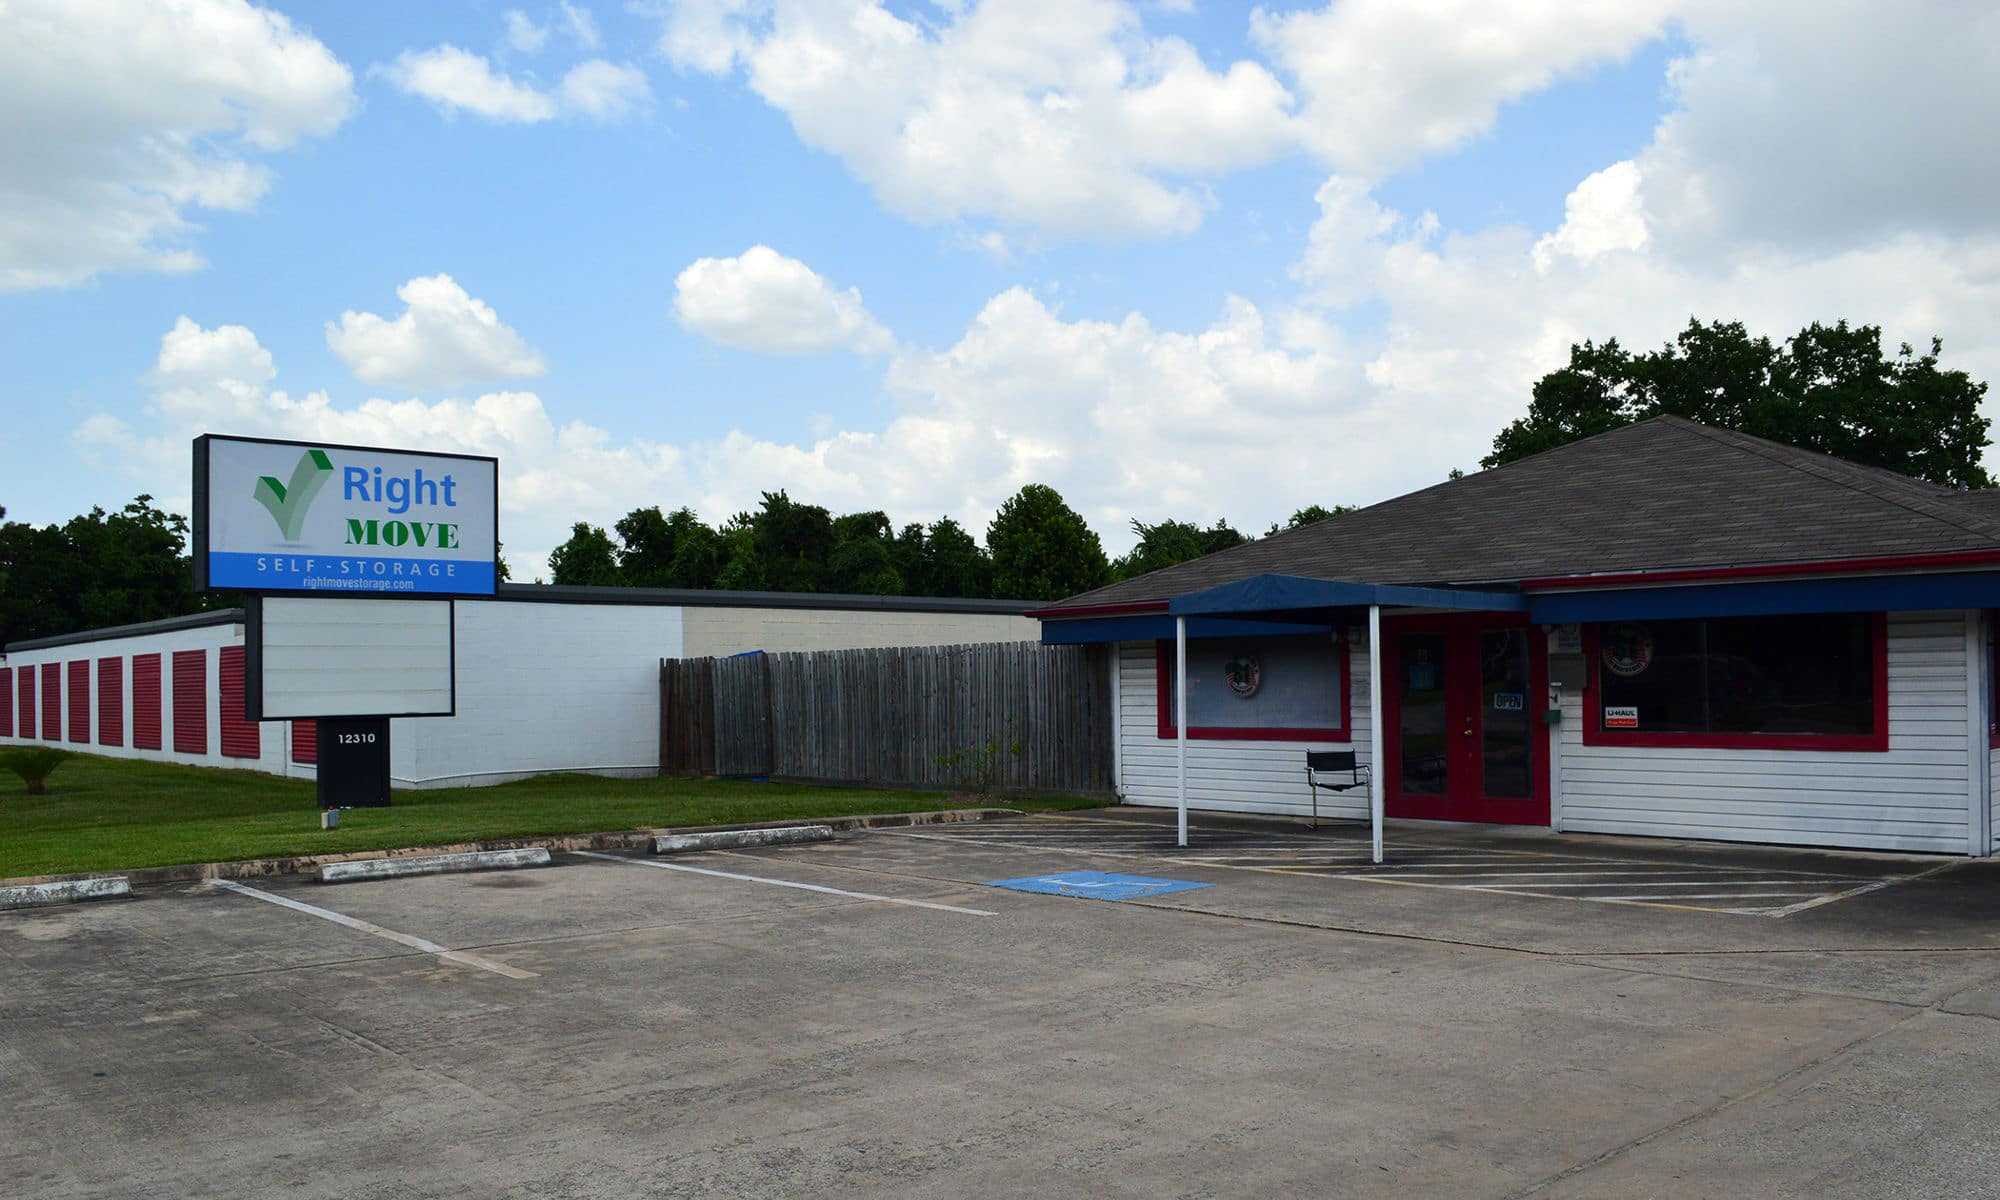 Check out the Right Move Storage location in Willowbrook!